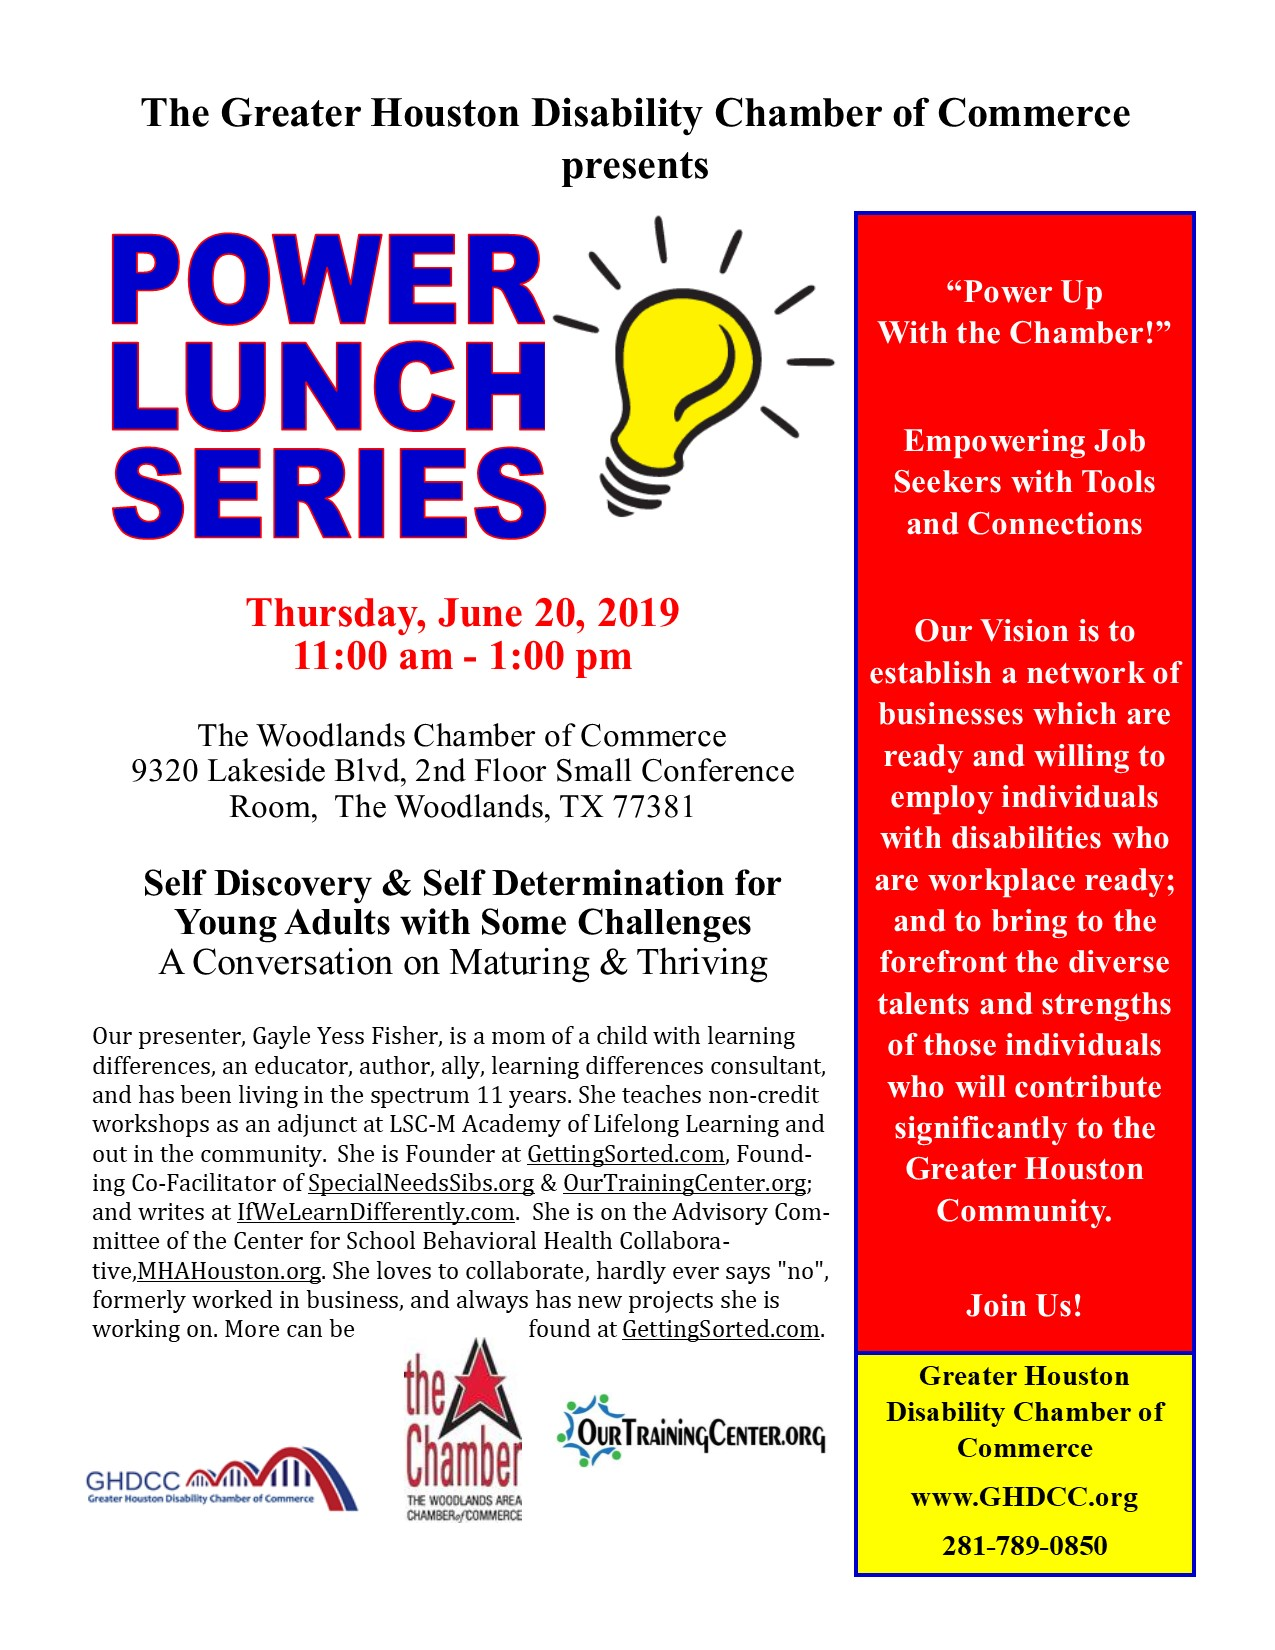 Power Lunch Flyer  June 2019.jpg